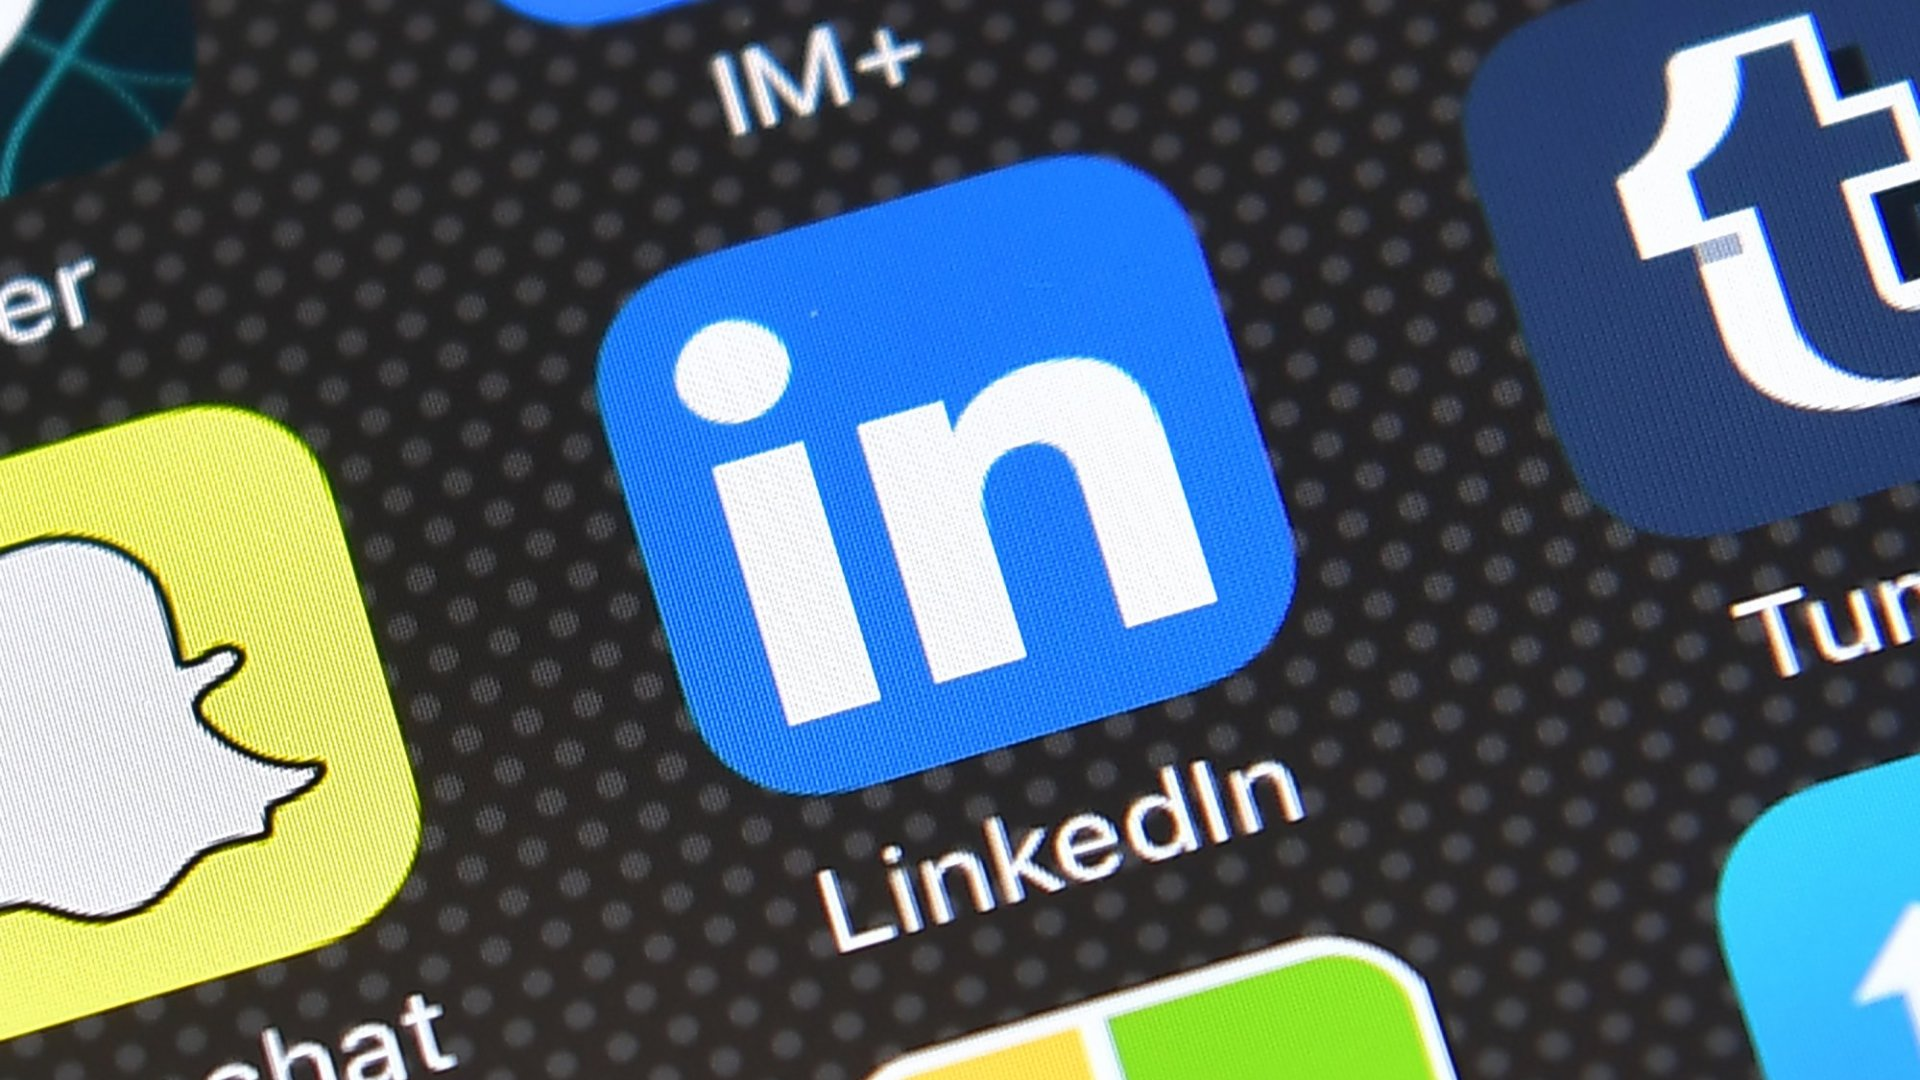 5 LinkedIn Mistakes That Cause People to Mock You